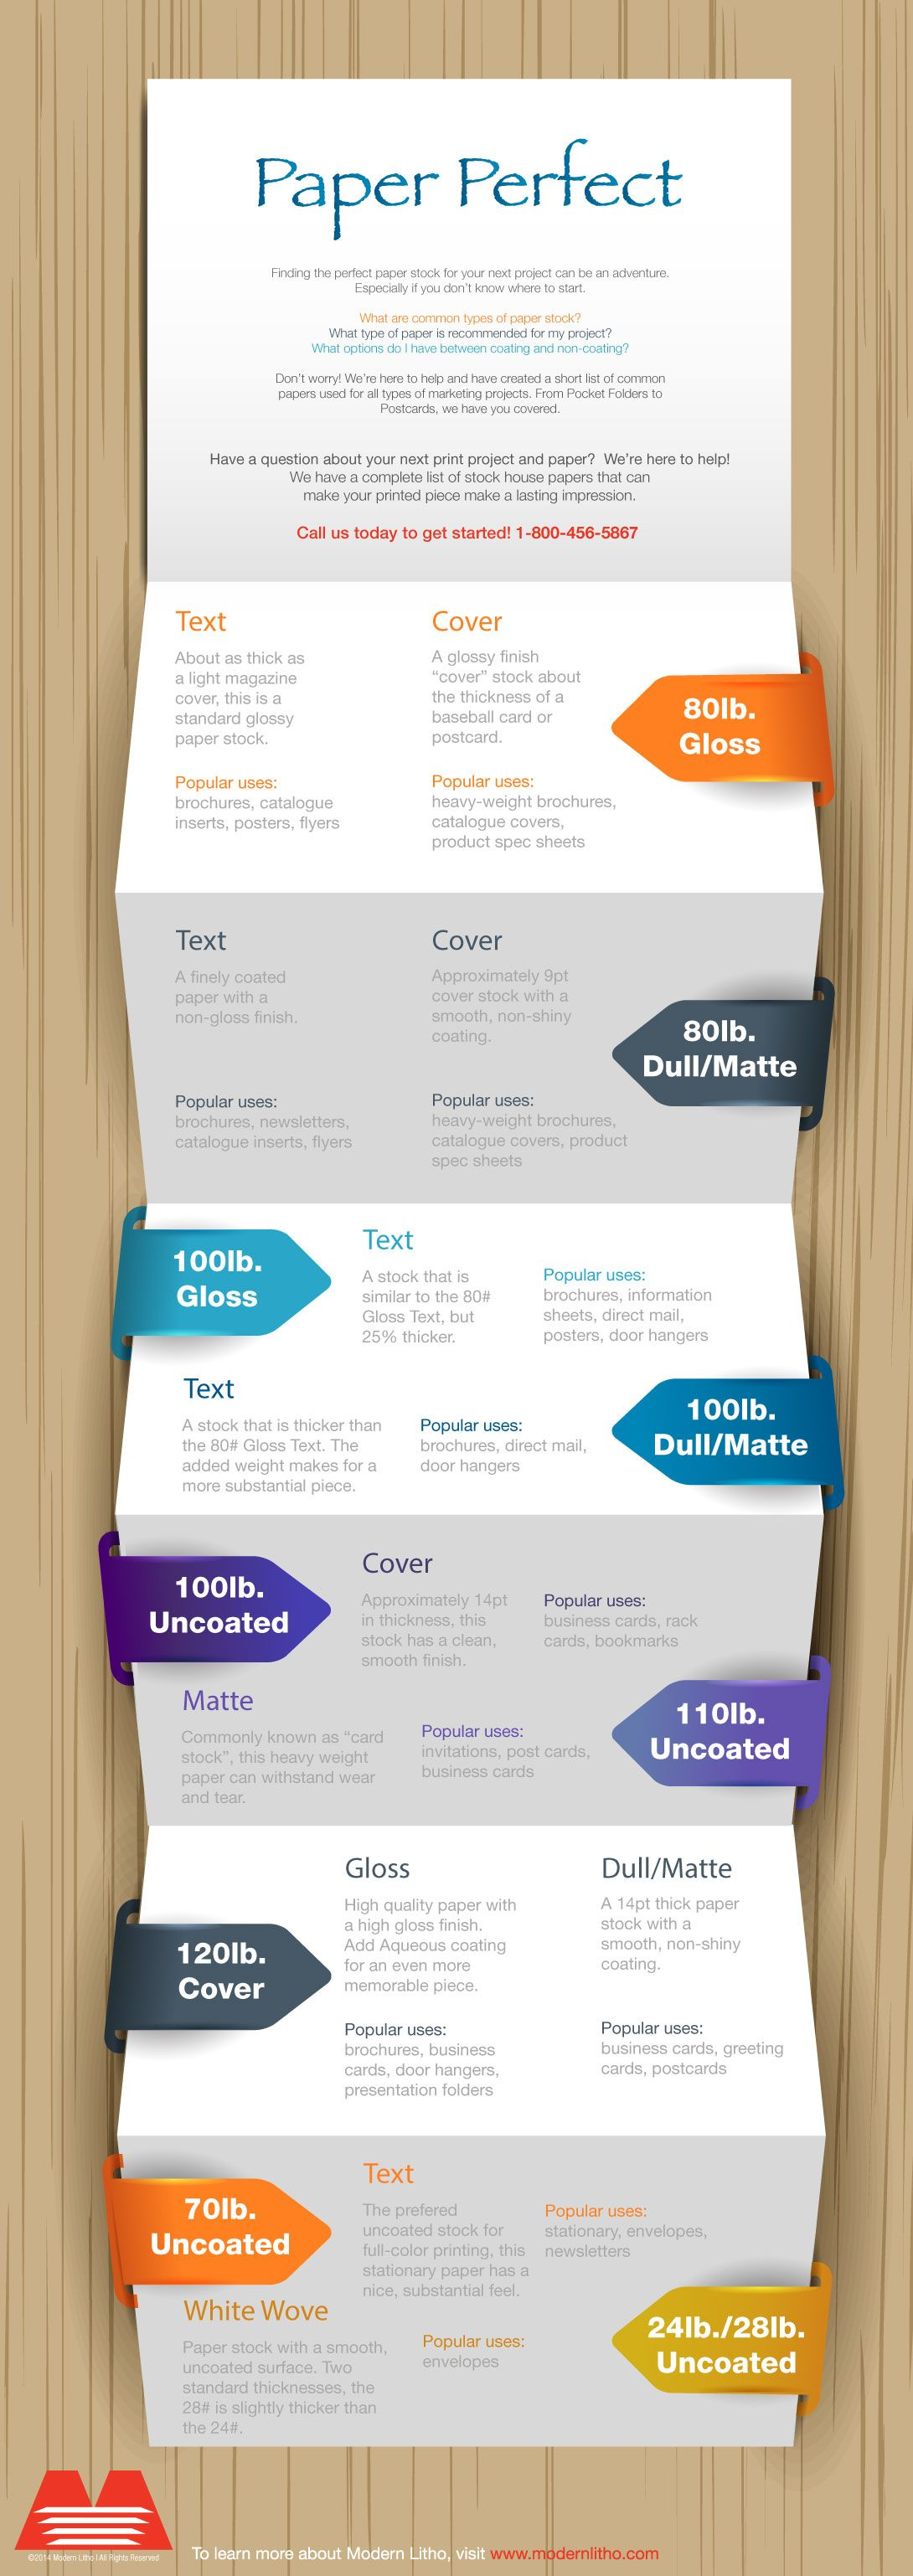 Paper types and popular uses.